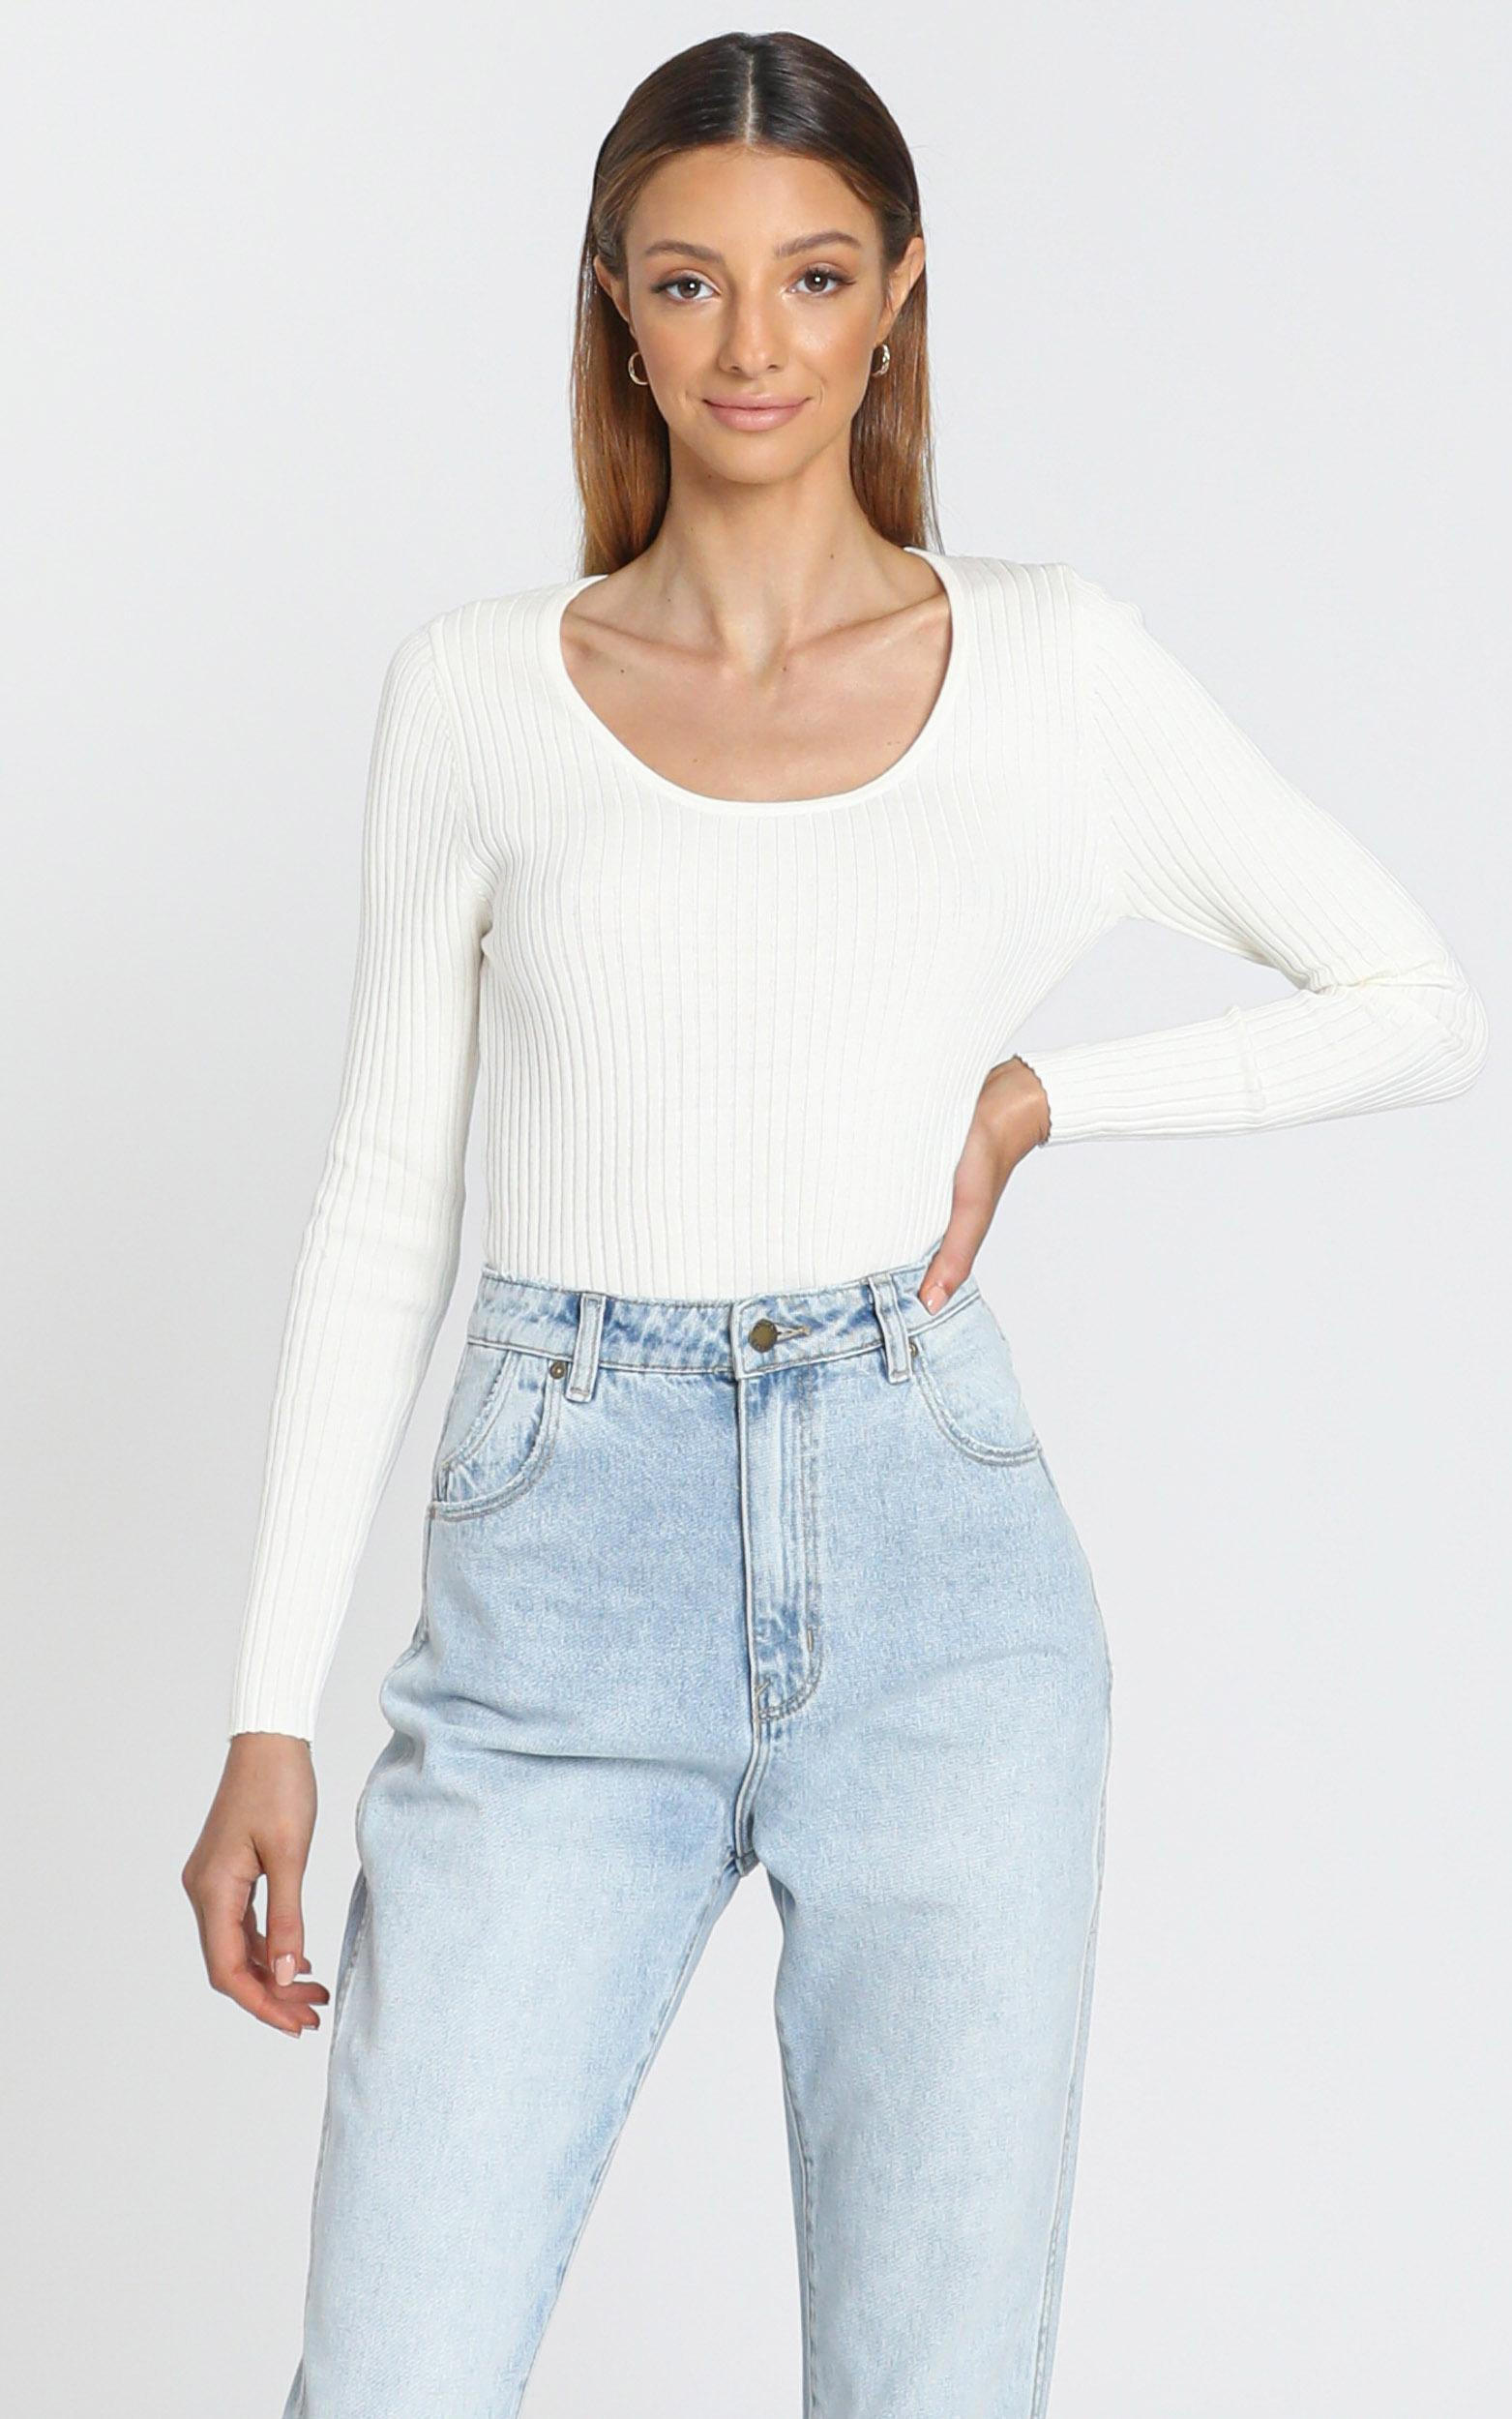 Rollas - Classic Rib Top Off in White - 6 (XS), White, hi-res image number null